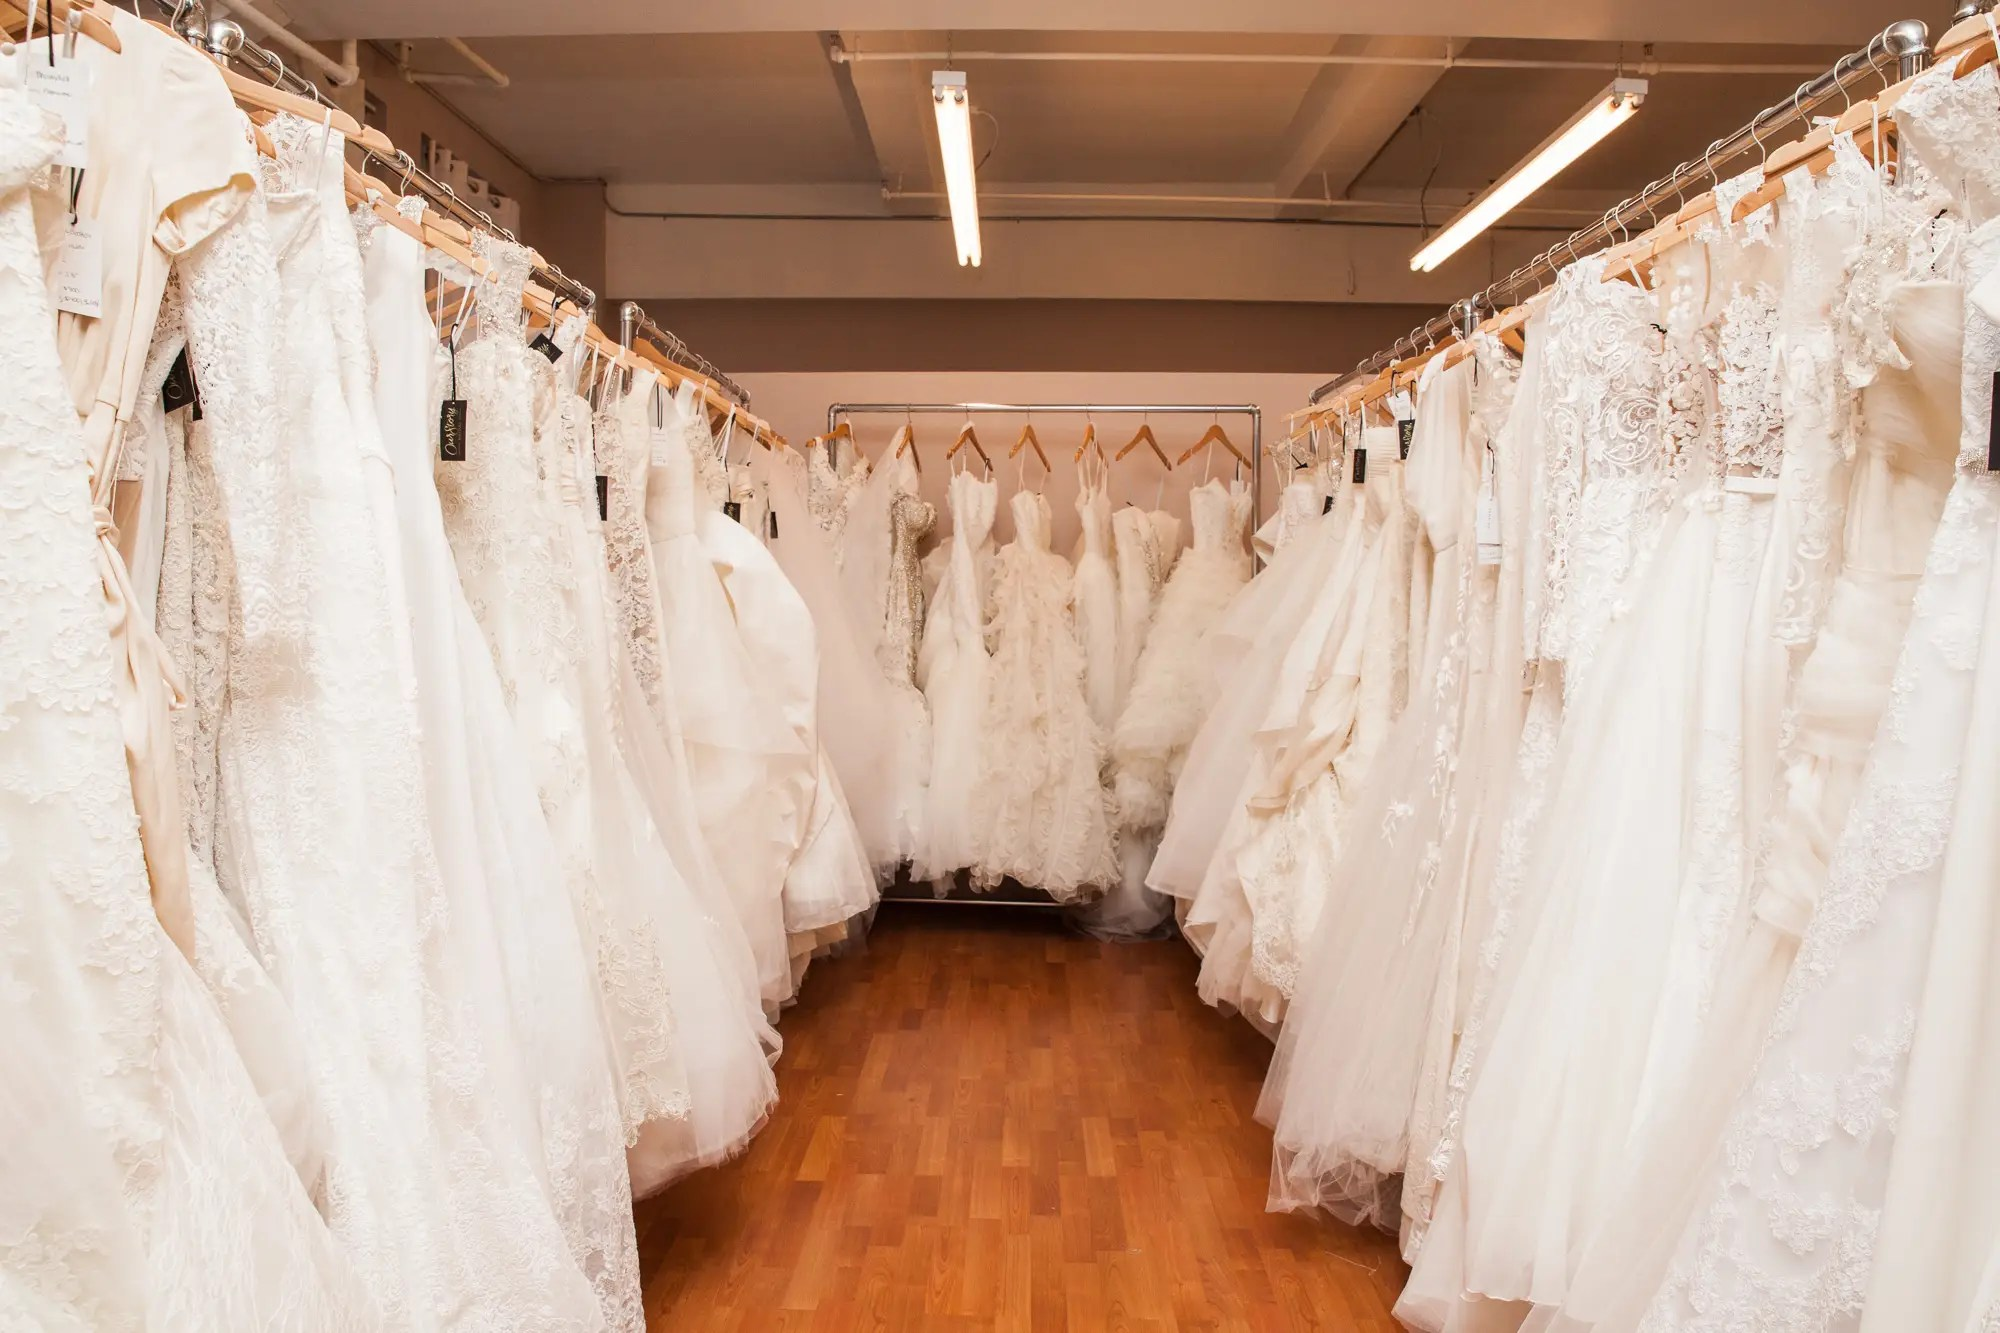 Wedding Dresses That Are Designer, But At Steep Discounts